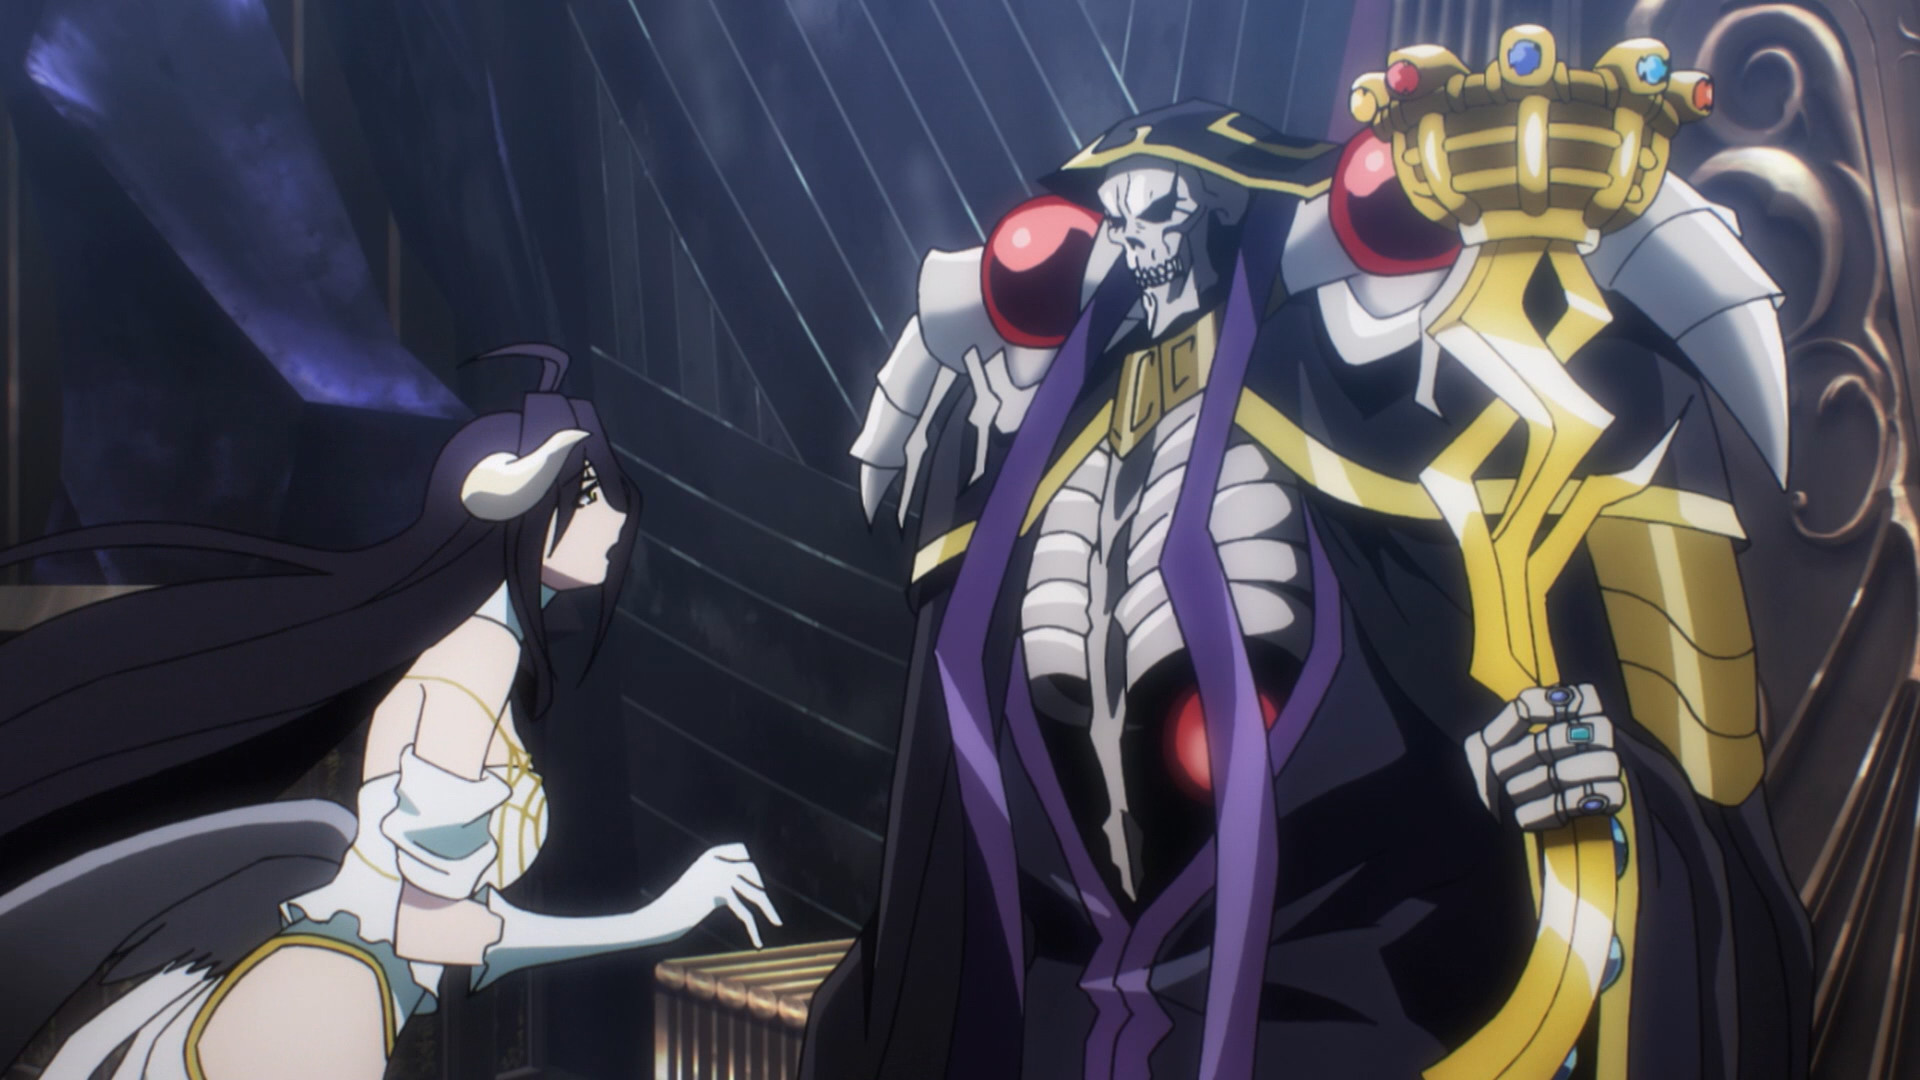 Overlord Anime Albedo Wallpaper (76+ images)